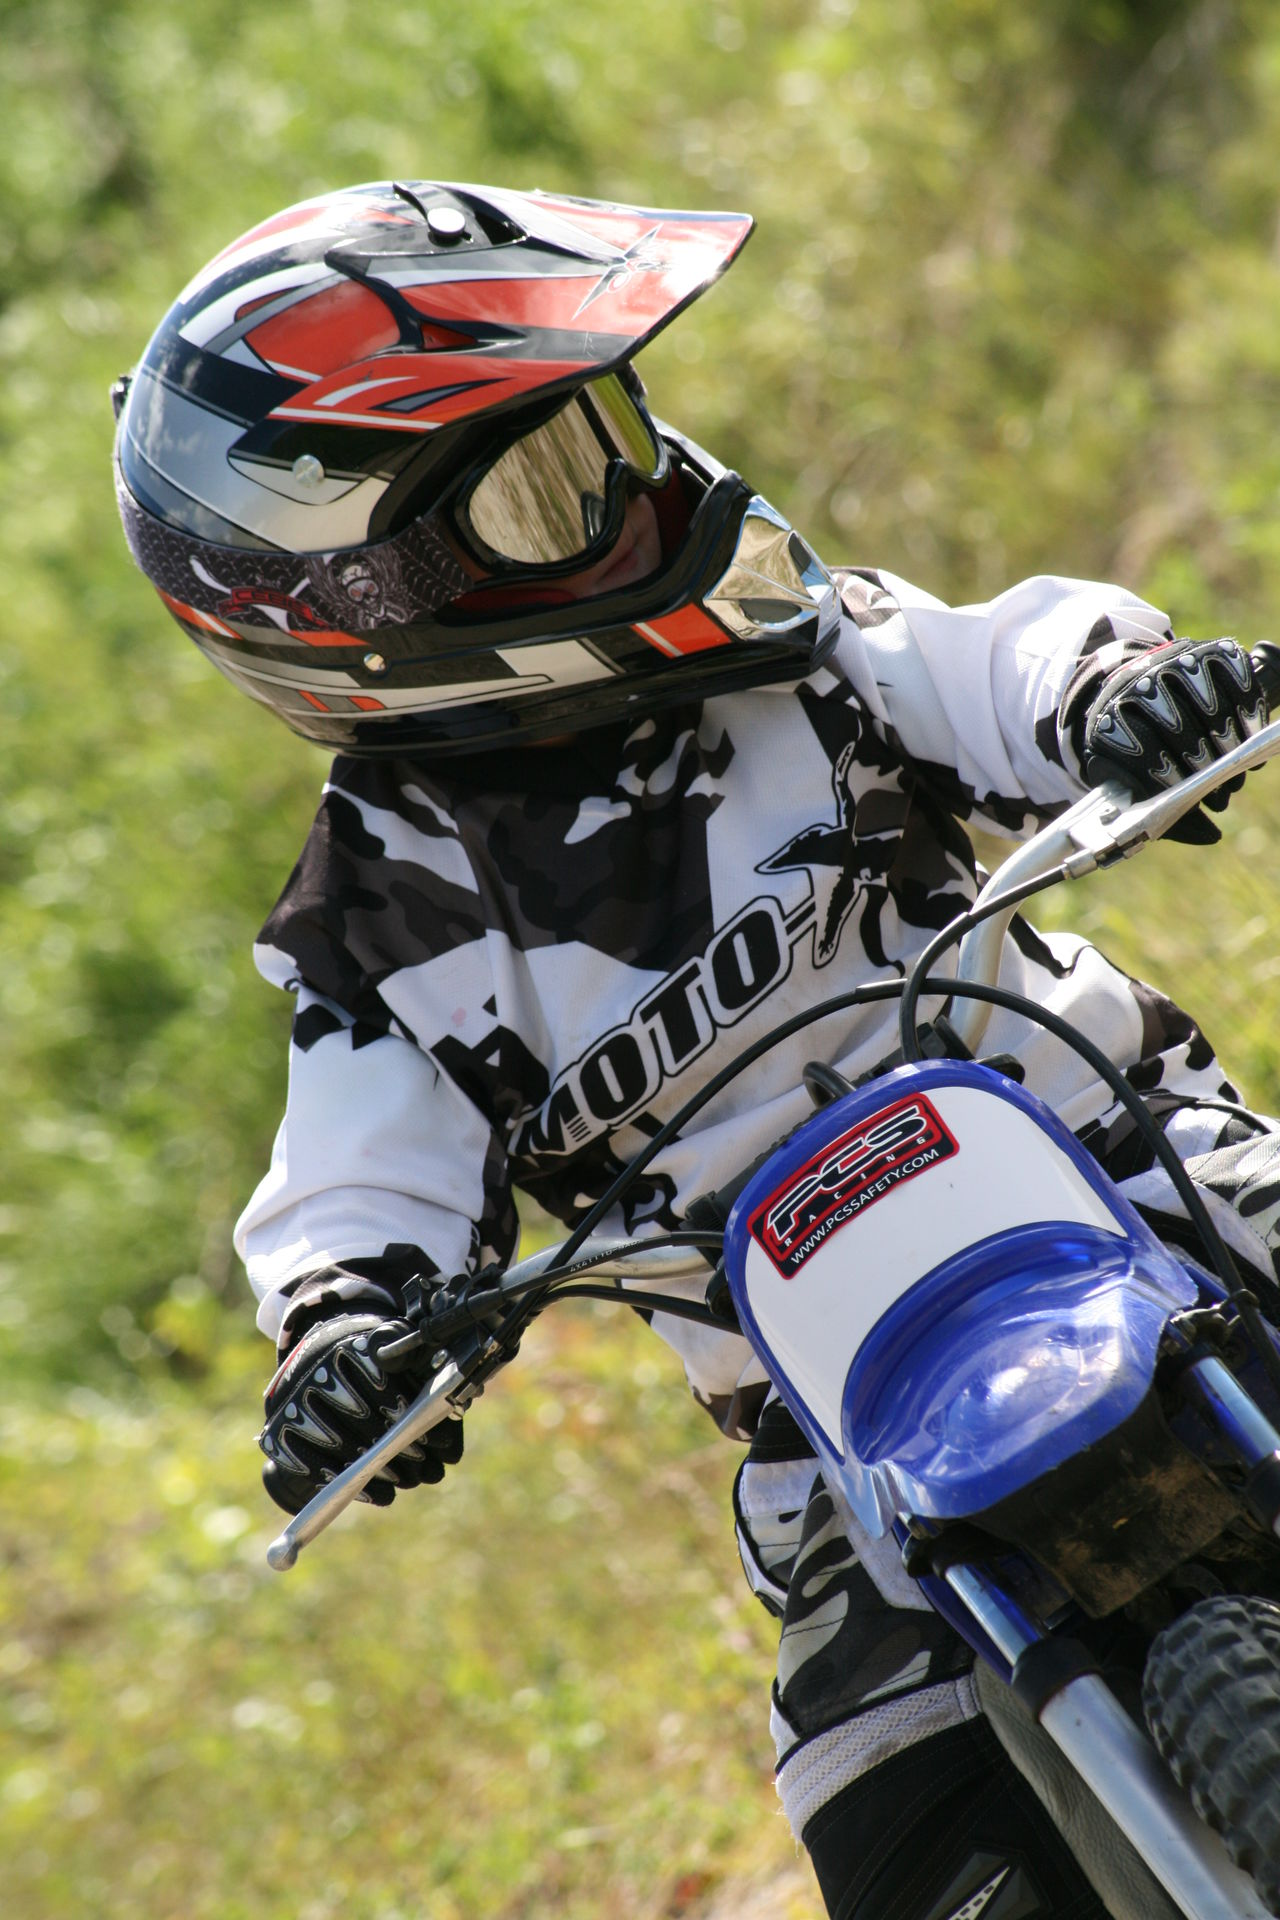 Athlete Child Competition Competitive Sport Day Extreme Sports Kid Motion Motorcycle Racing Motorsport One Man Only One Person Only Men Outdoors People Protective Sportswear Riding Sport Sports Clothing Sports Race Sports Uniform Sportsman